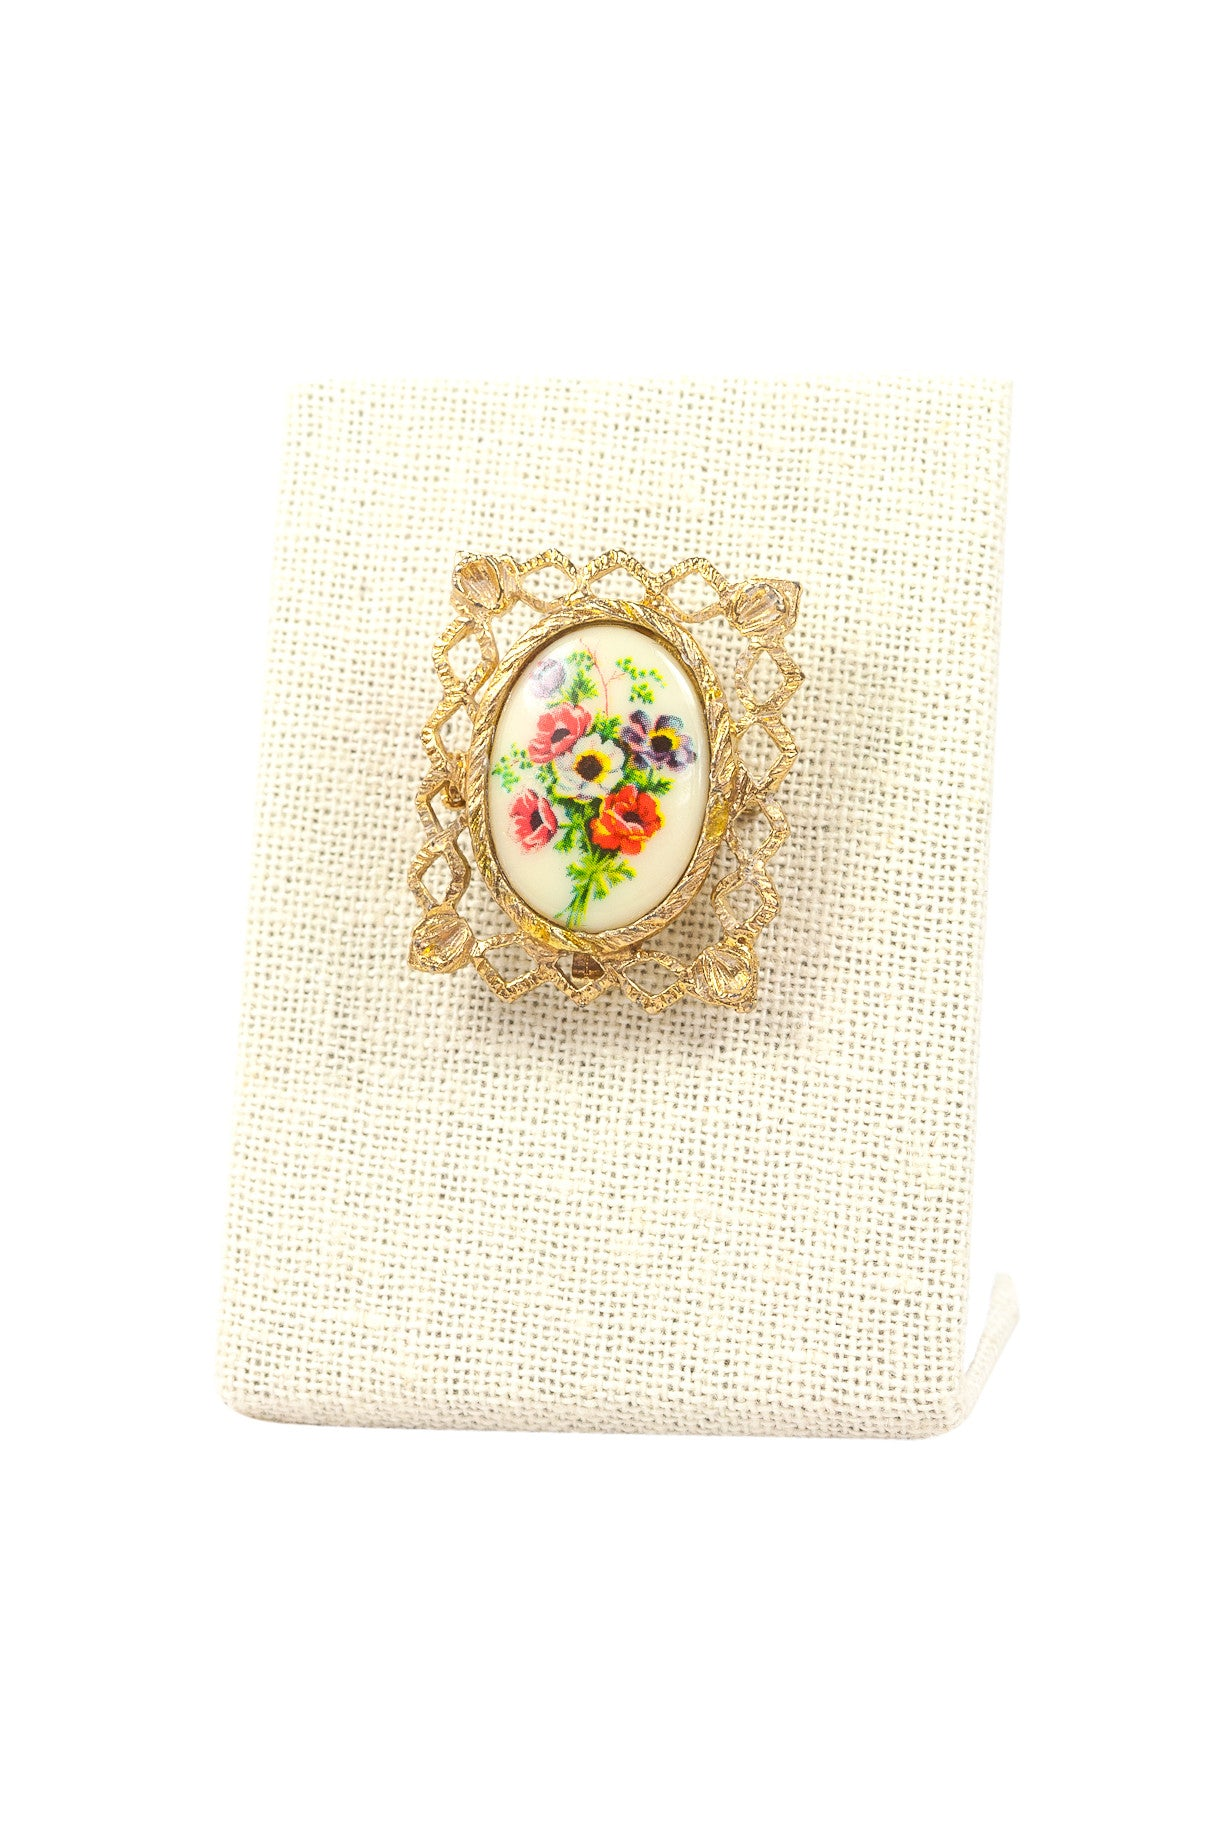 50's__Vintage__Antique Floral Brooch